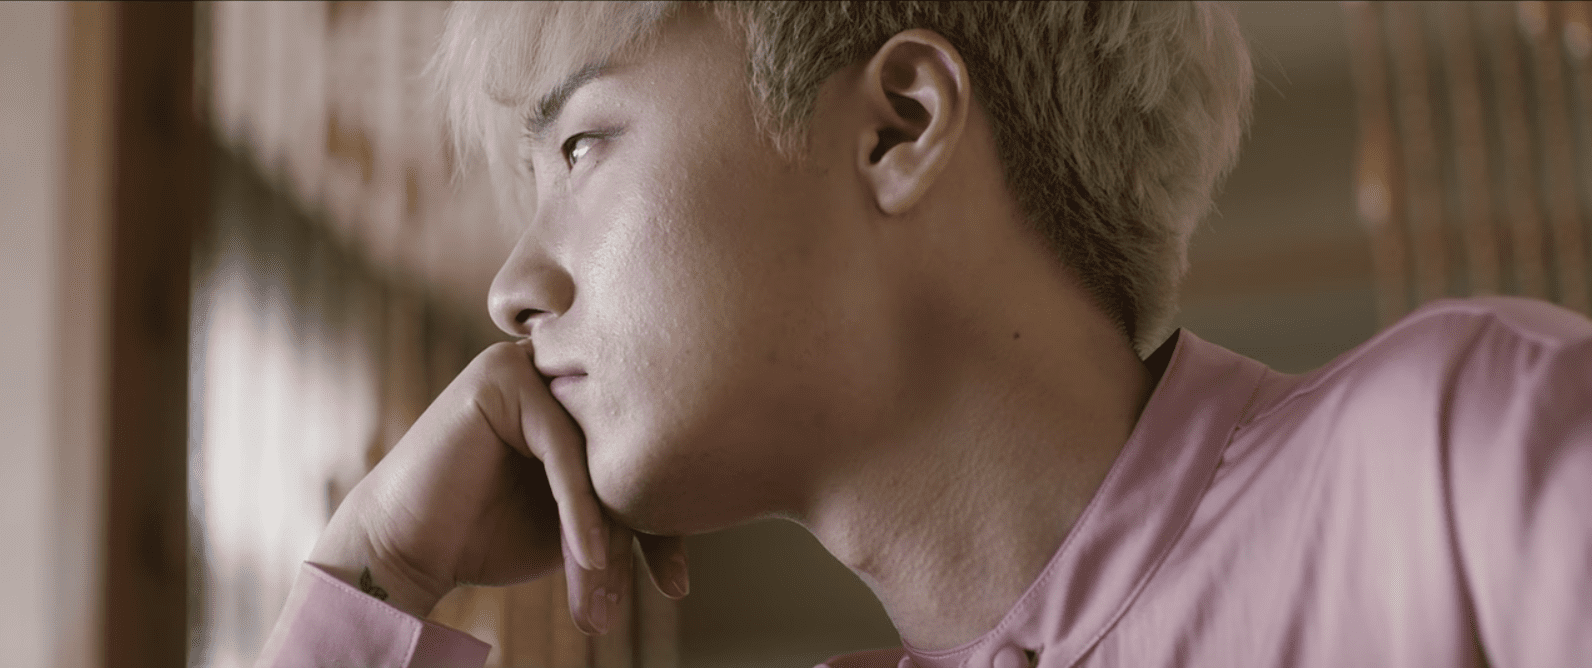 """WATCH: Roy Kim Moves On From Heartache In New """"Suddenly"""" MV"""